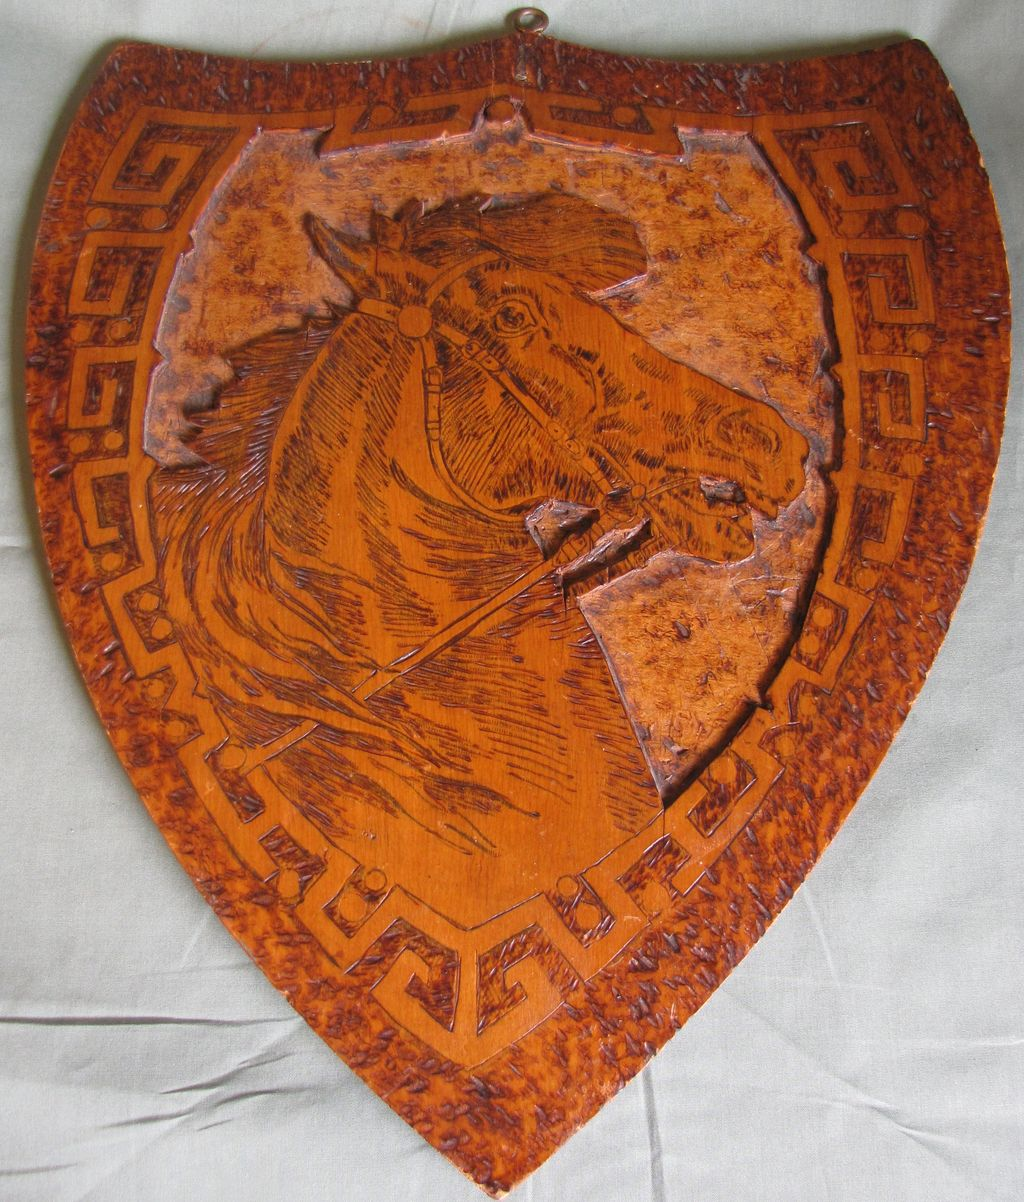 Large Shield Shaped Flemish Art Plaque, Horse, Pyrography